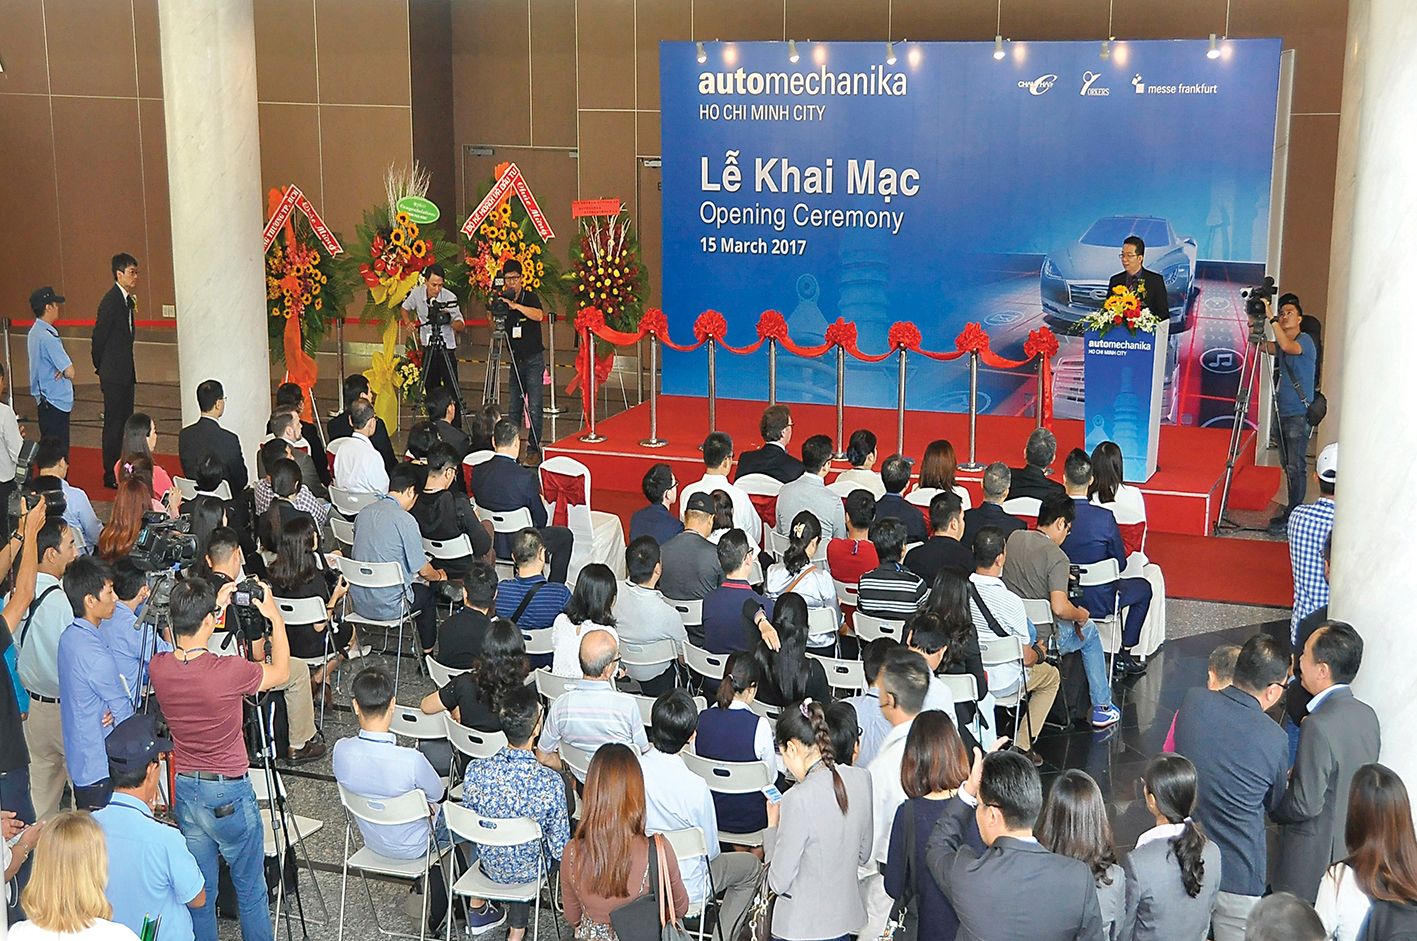 2018 Edition of Automechanika Ho Chi Minh City in April